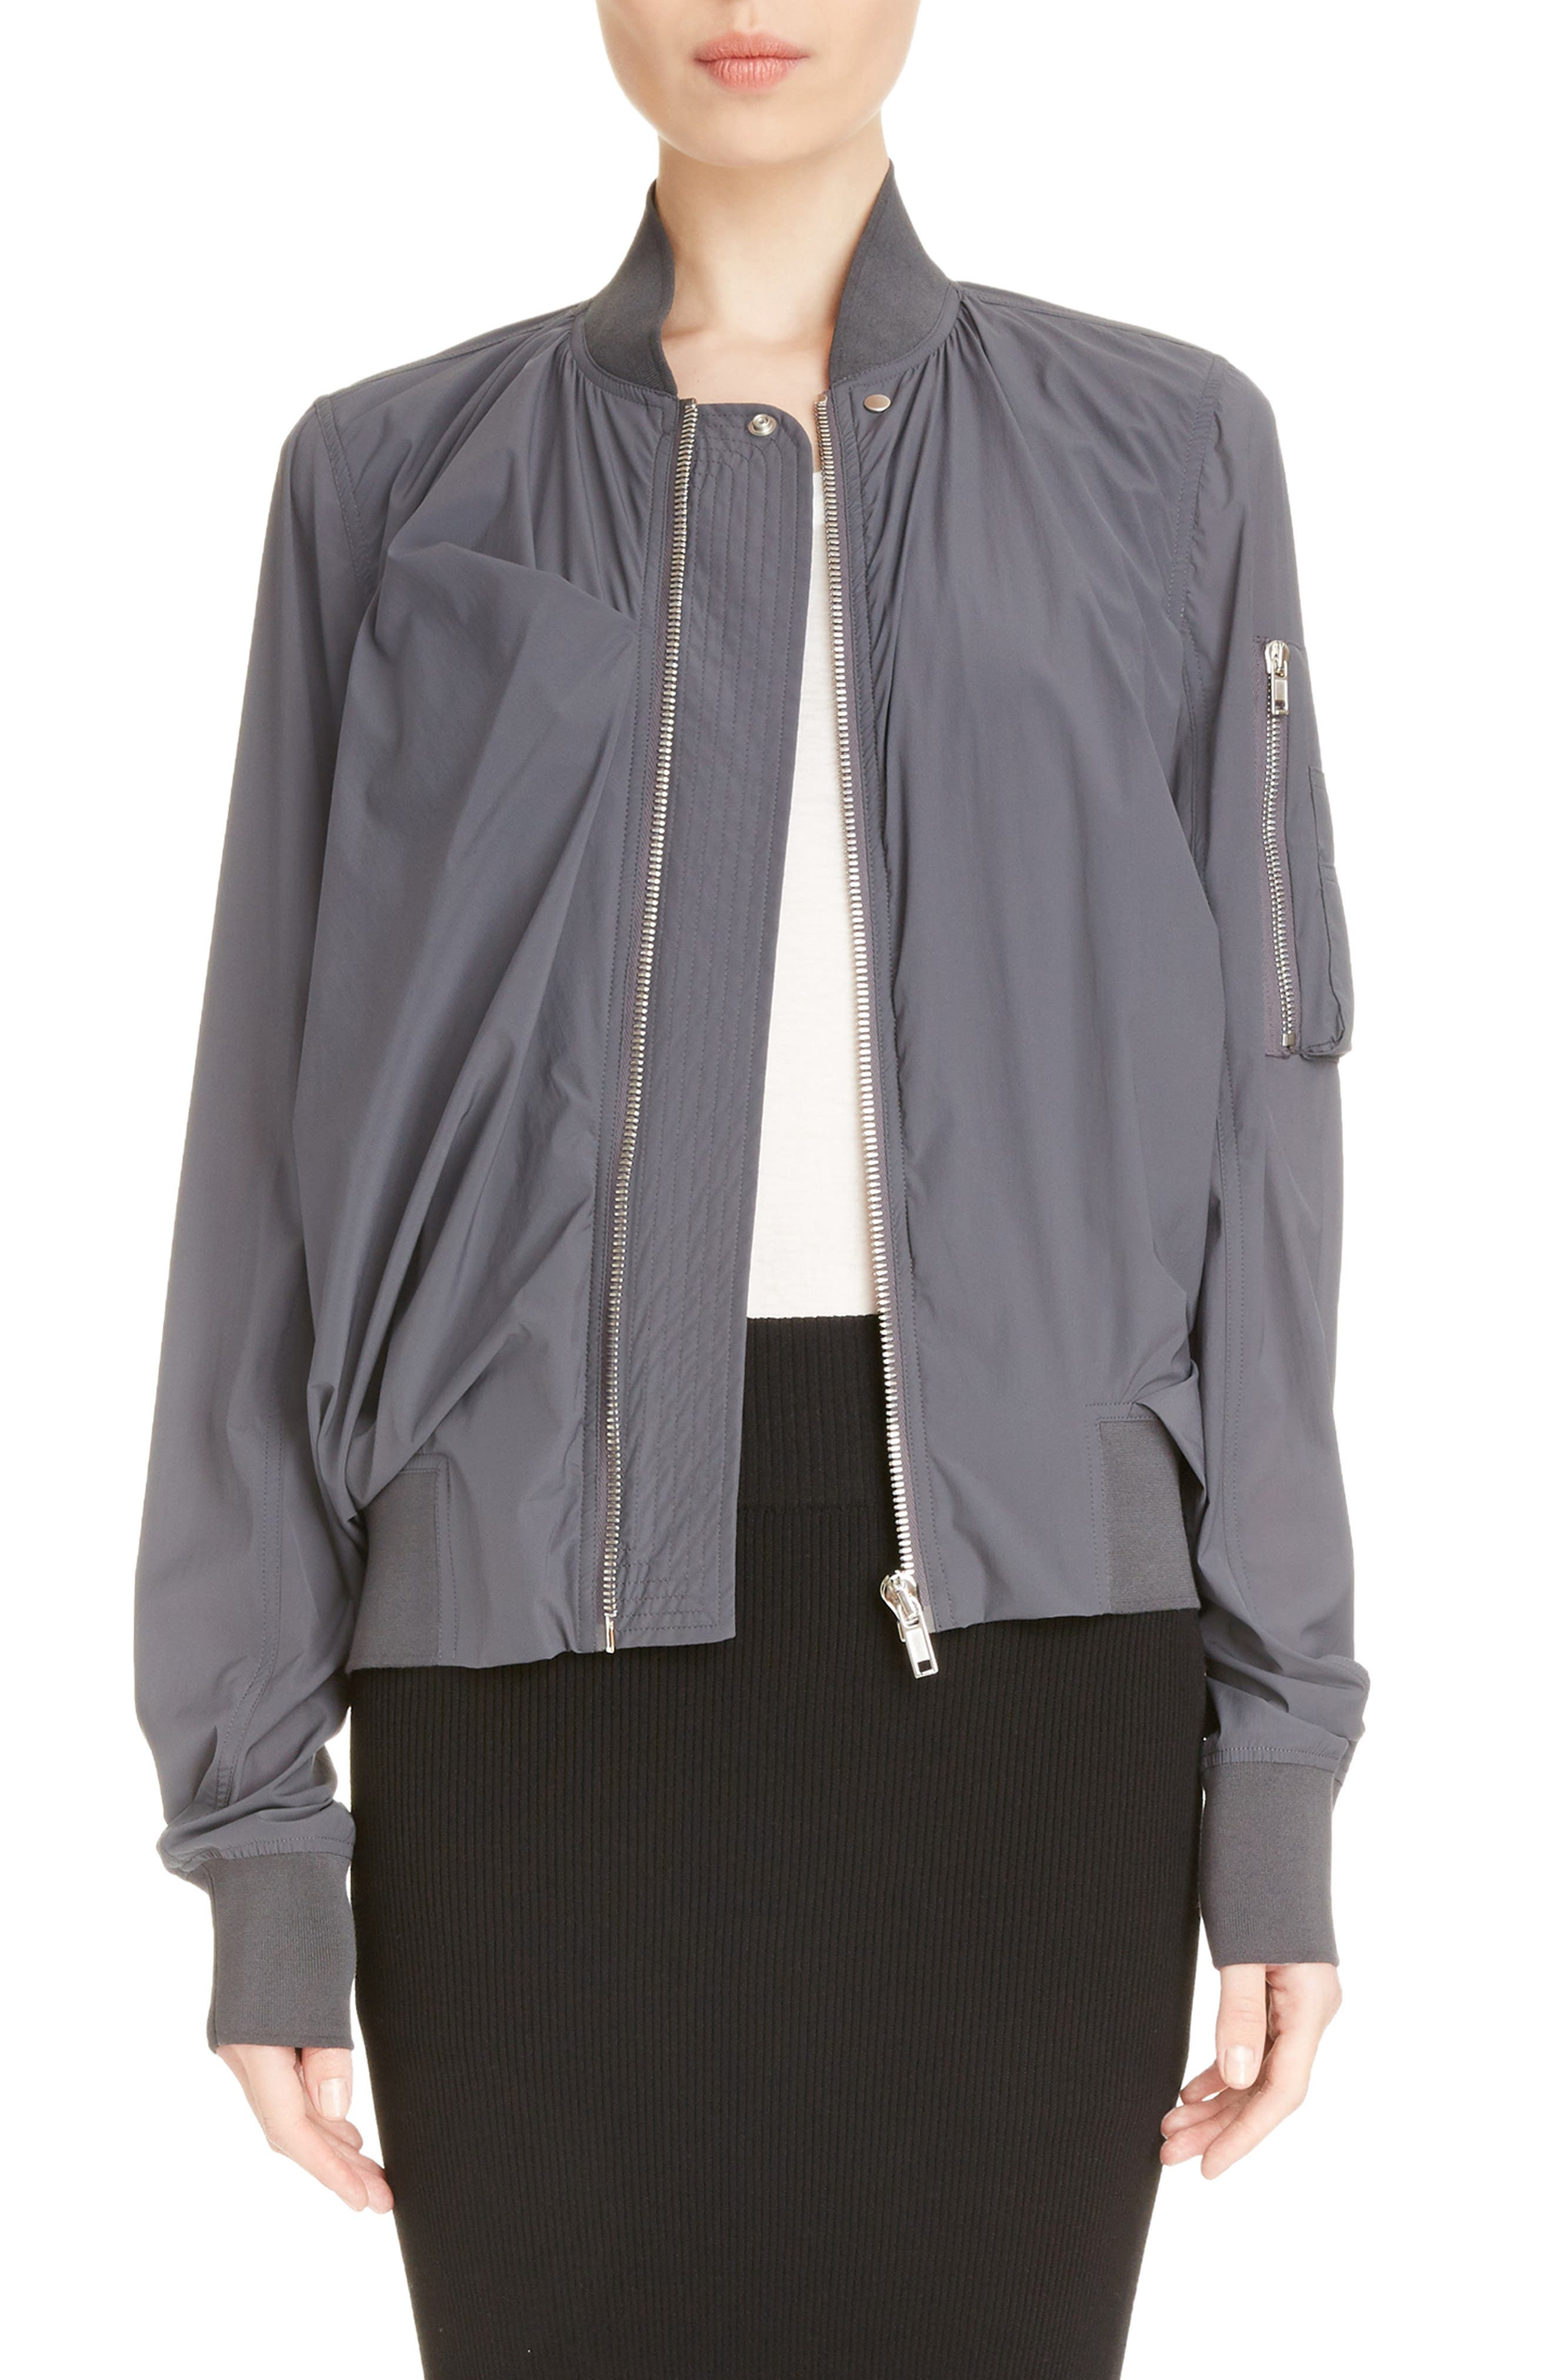 Swoop Back Bomber,                             Main thumbnail 1, color,                             020